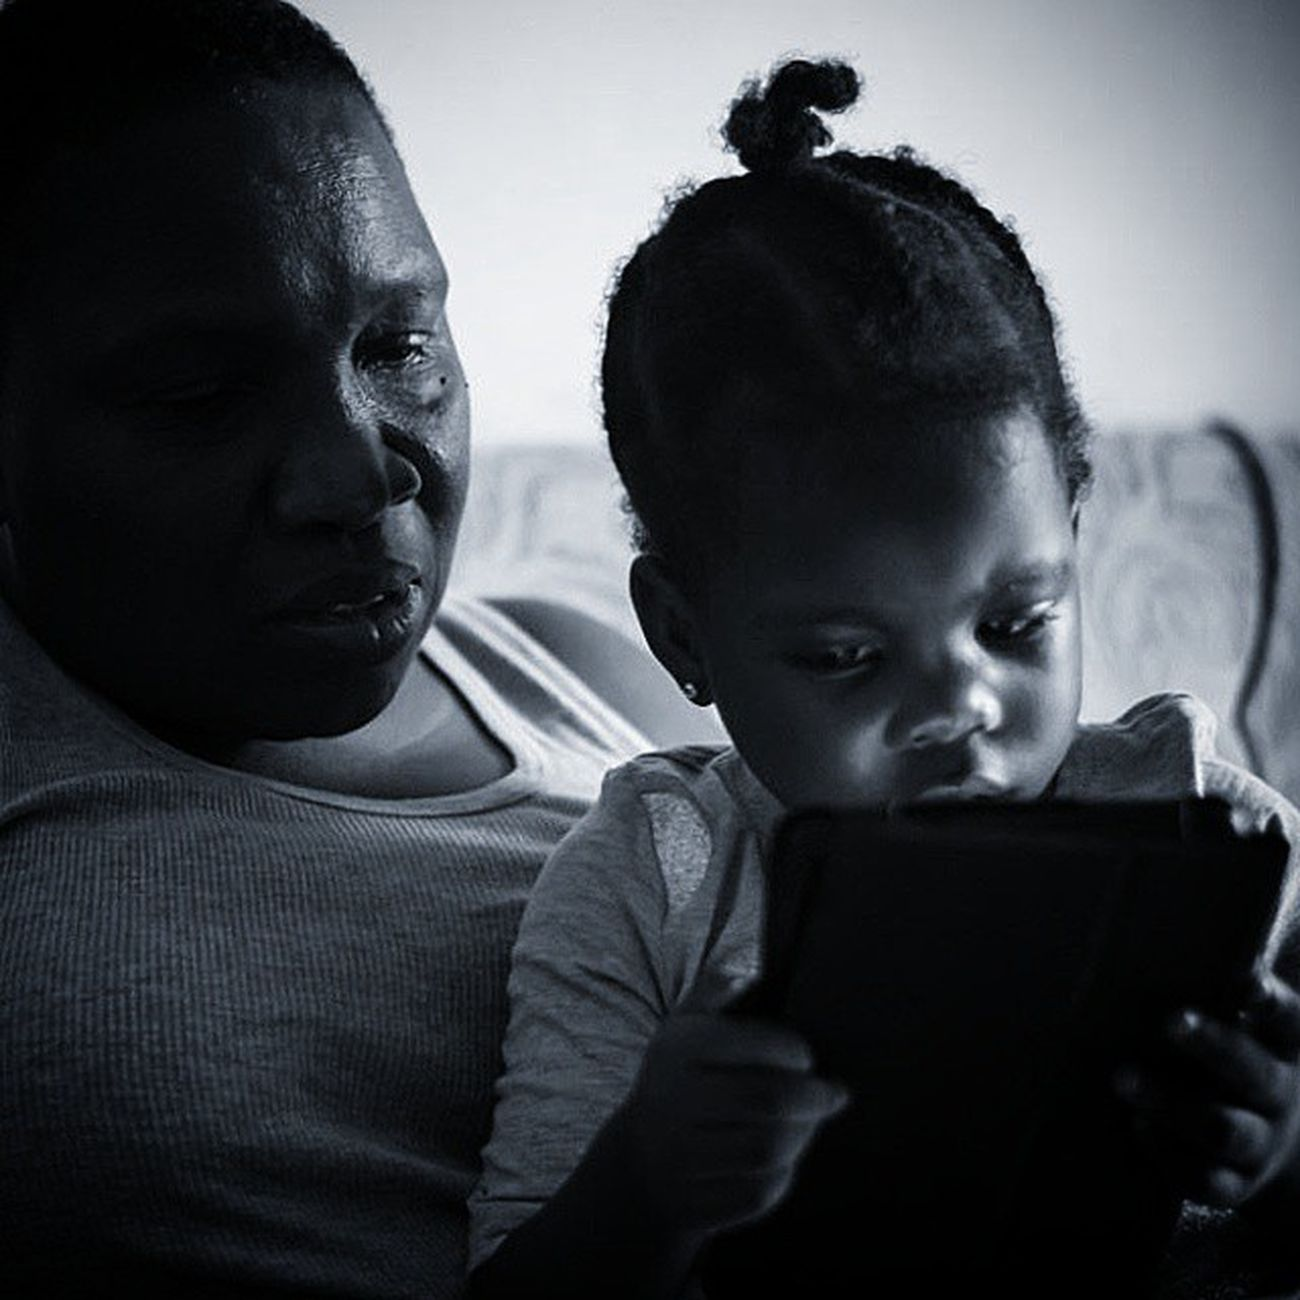 Kidsmood_bnw PureGrenada Peppapig Samsungtablet Daughterlove Instadaily Blackandwhite All_shots Portraiture